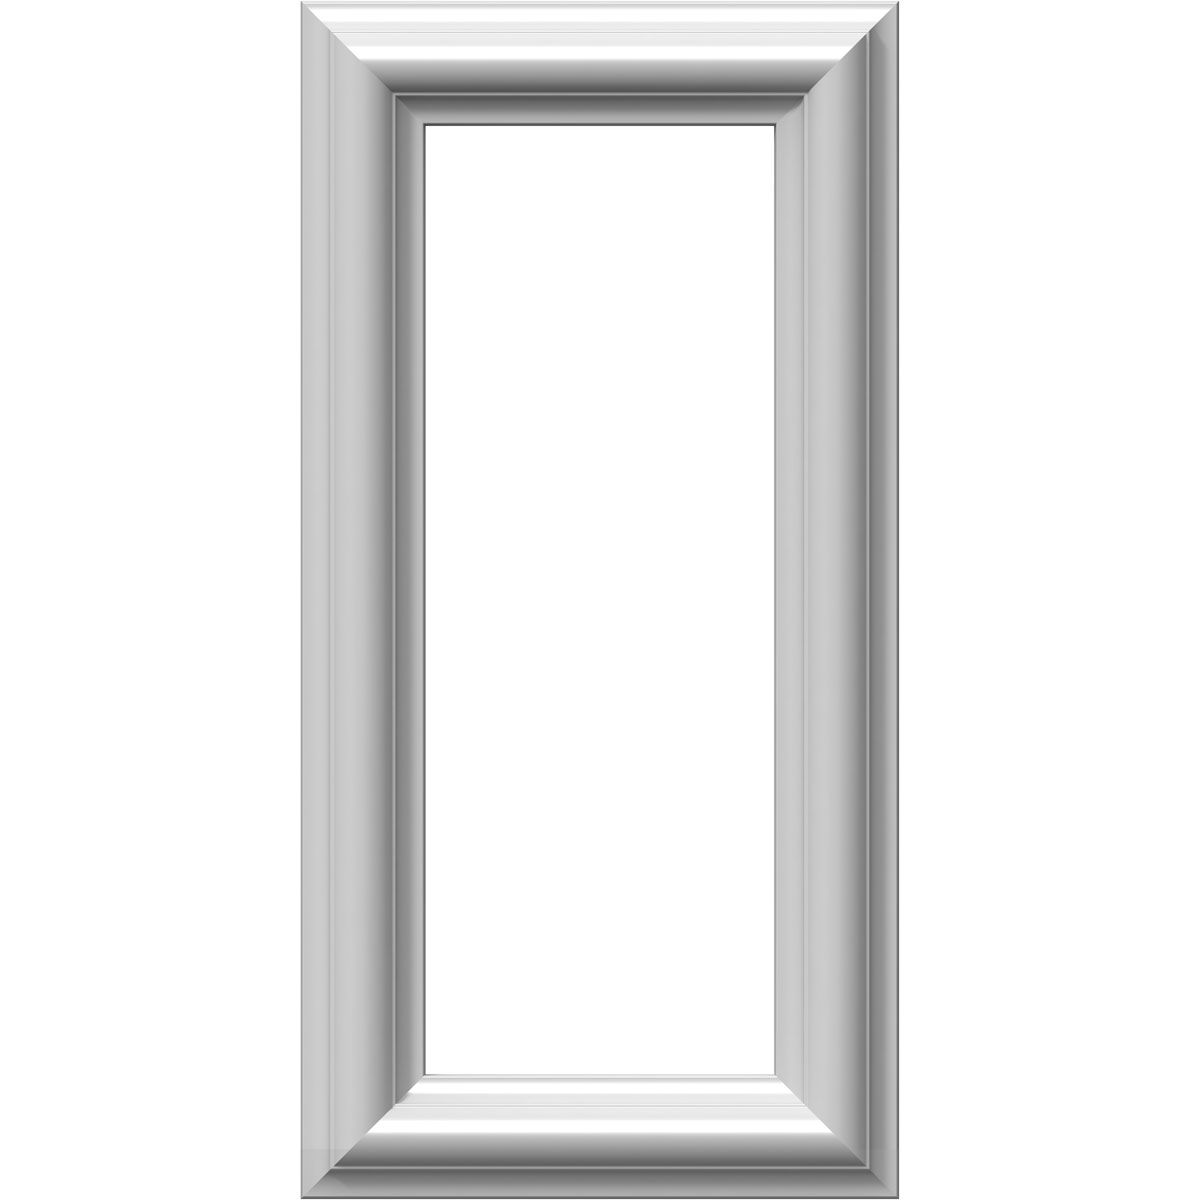 8 W X 16 H X 1 2 P Ashford Molded Classic Wainscot Wall Panel Wainscoting Panels Wainscoting Picture Frame Wainscoting